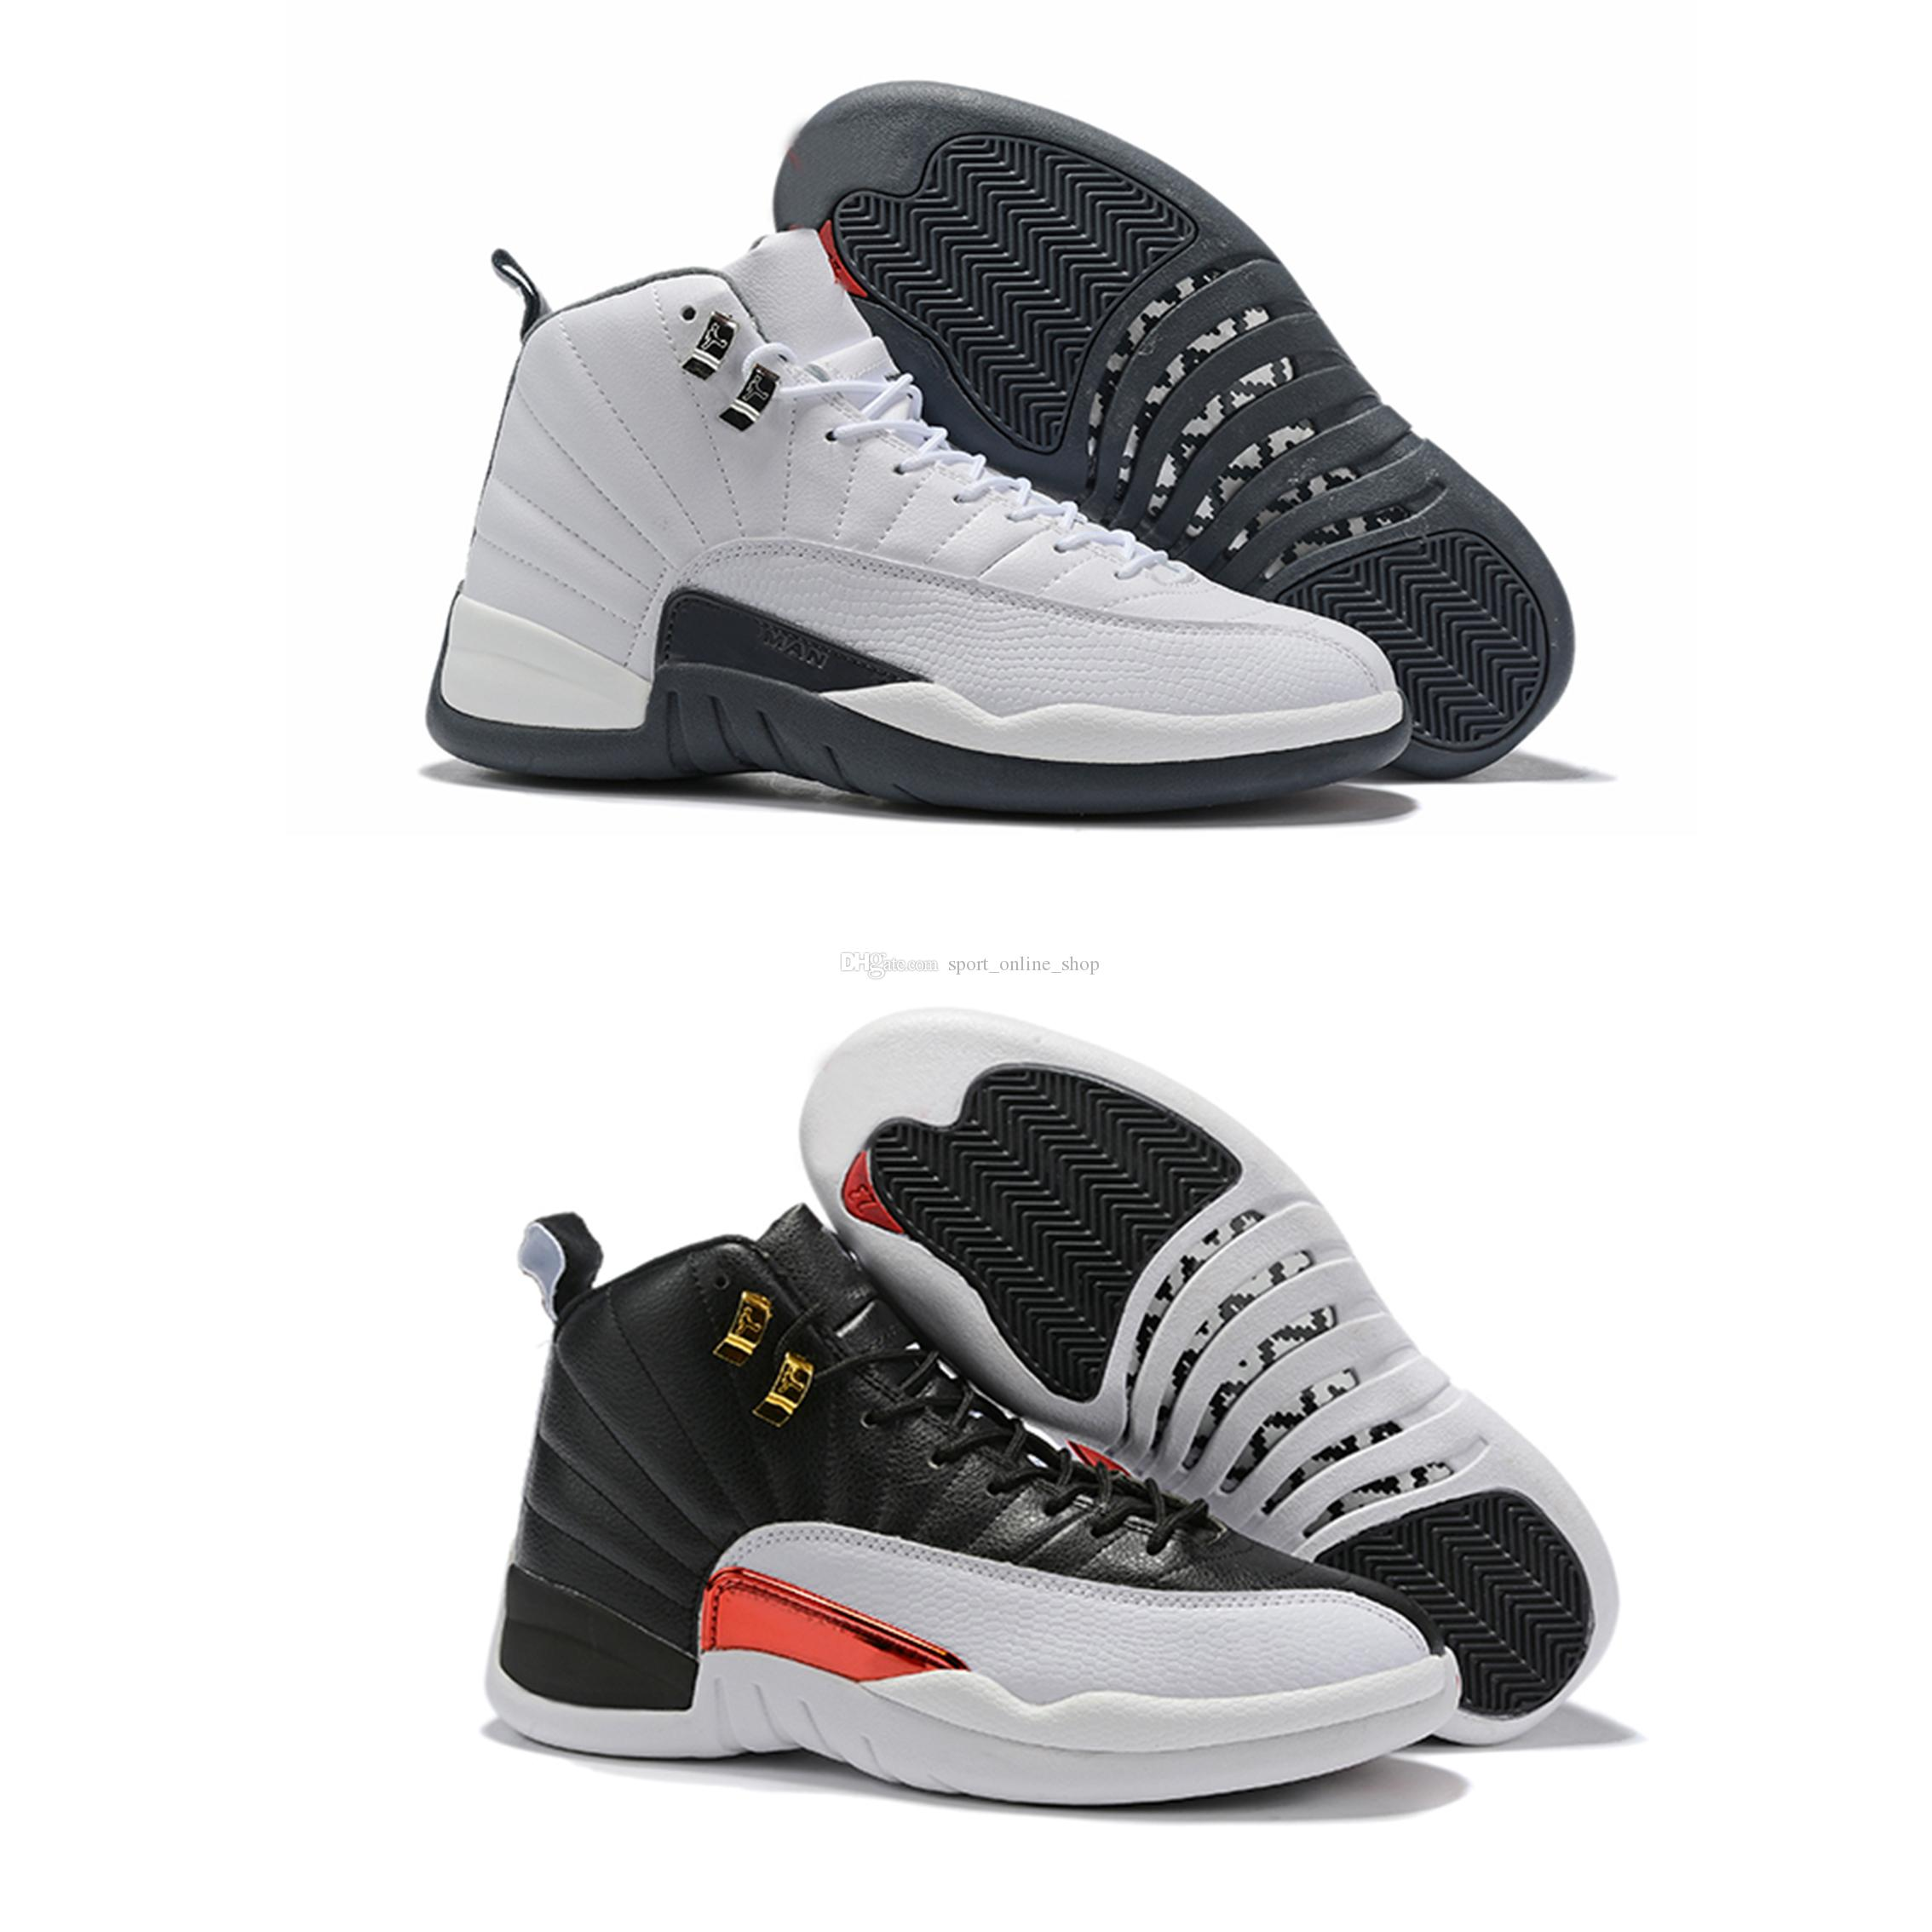 size 40 741cb 67d2e High Quality 2019 New Reverse Taxi 12s Men basketball shoes 12 White Black  Gold Designer outdoor Sports Sneakers With Shoes Box